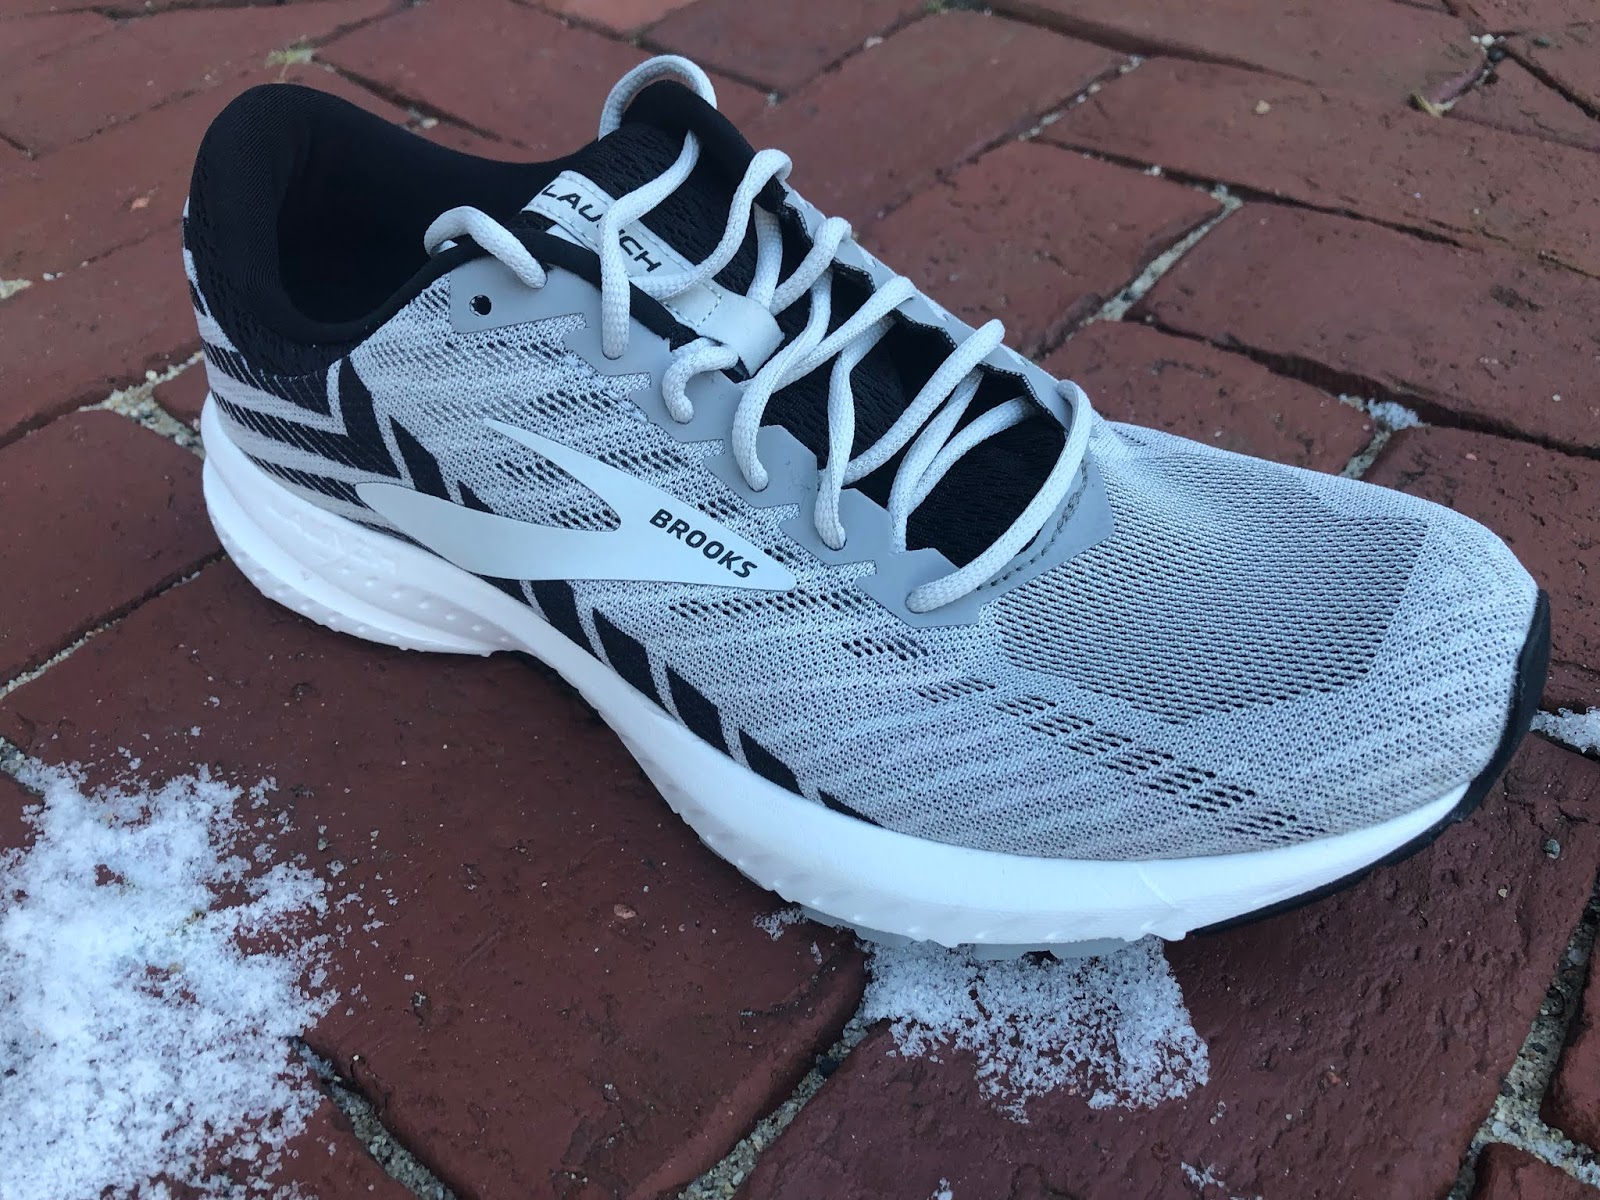 14ac19fb62f The Launch is the Brooks up tempo and longer race shoe. It slots into the  Energize collection. My Launch 6 sample checks in at exactly the same  weight as ...